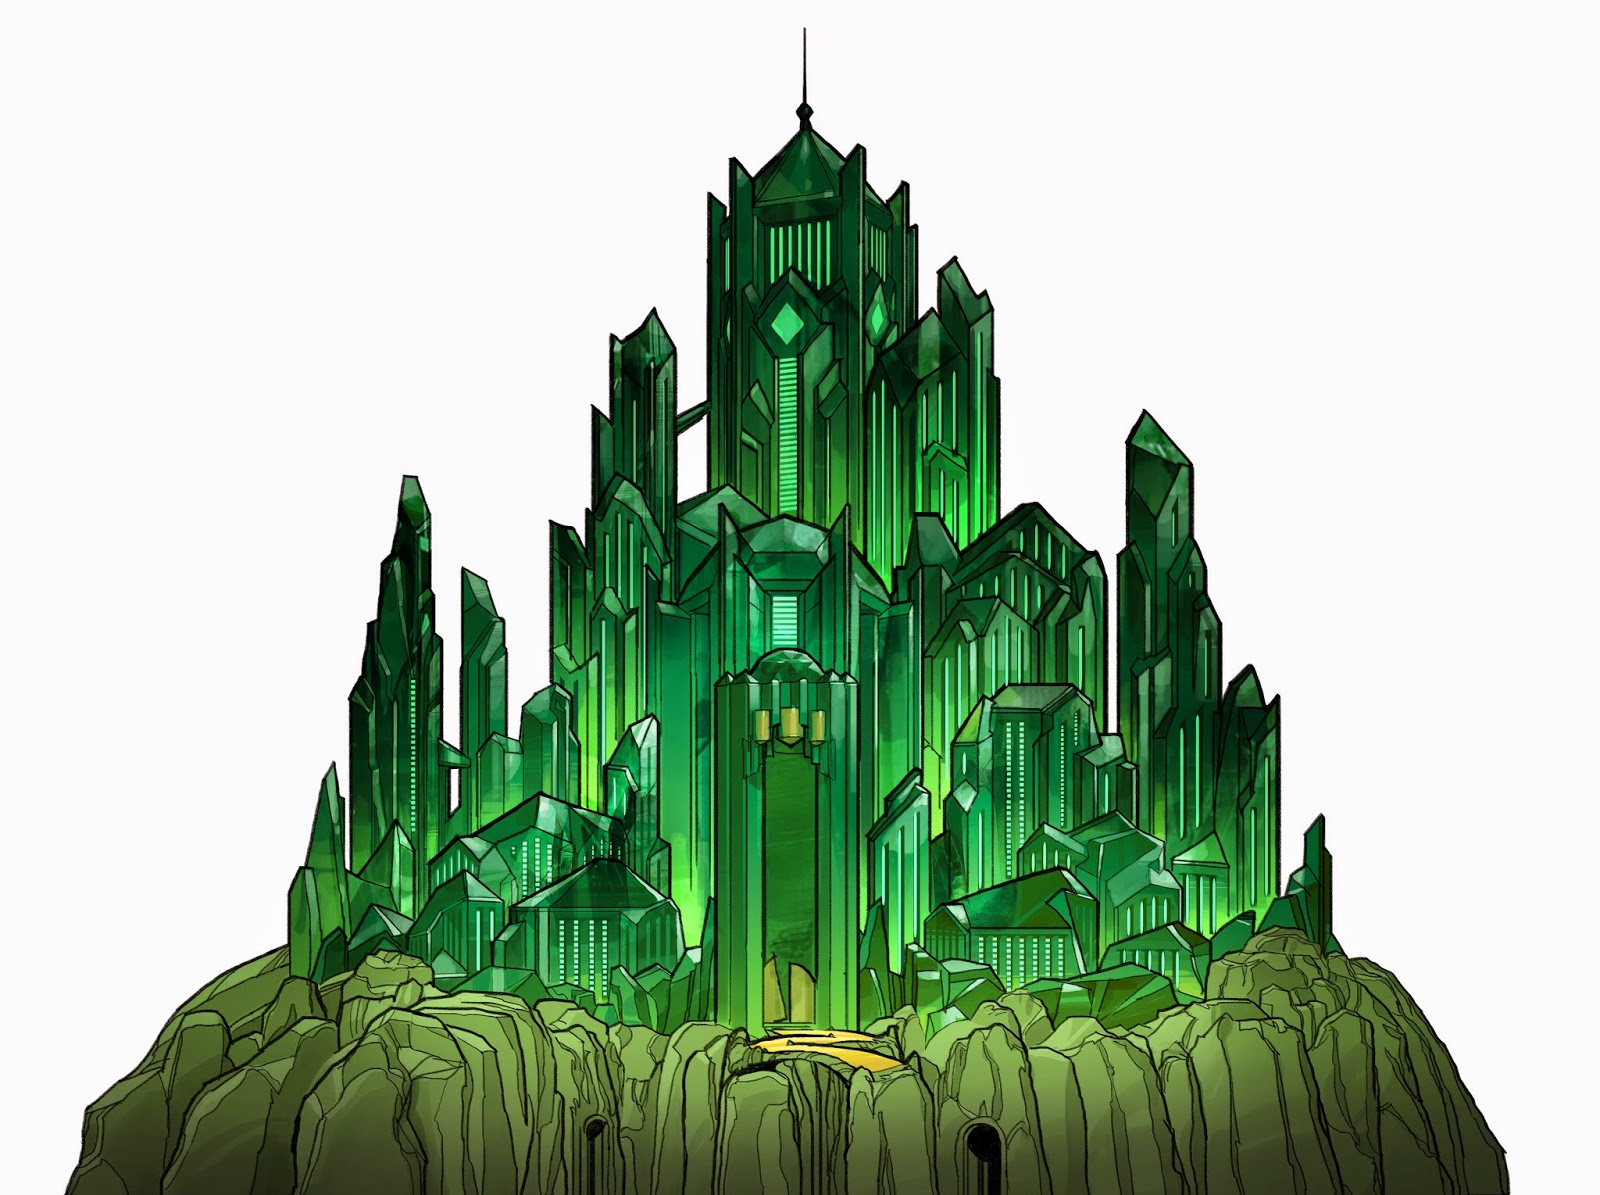 Emerald City (Ypbor Yan)